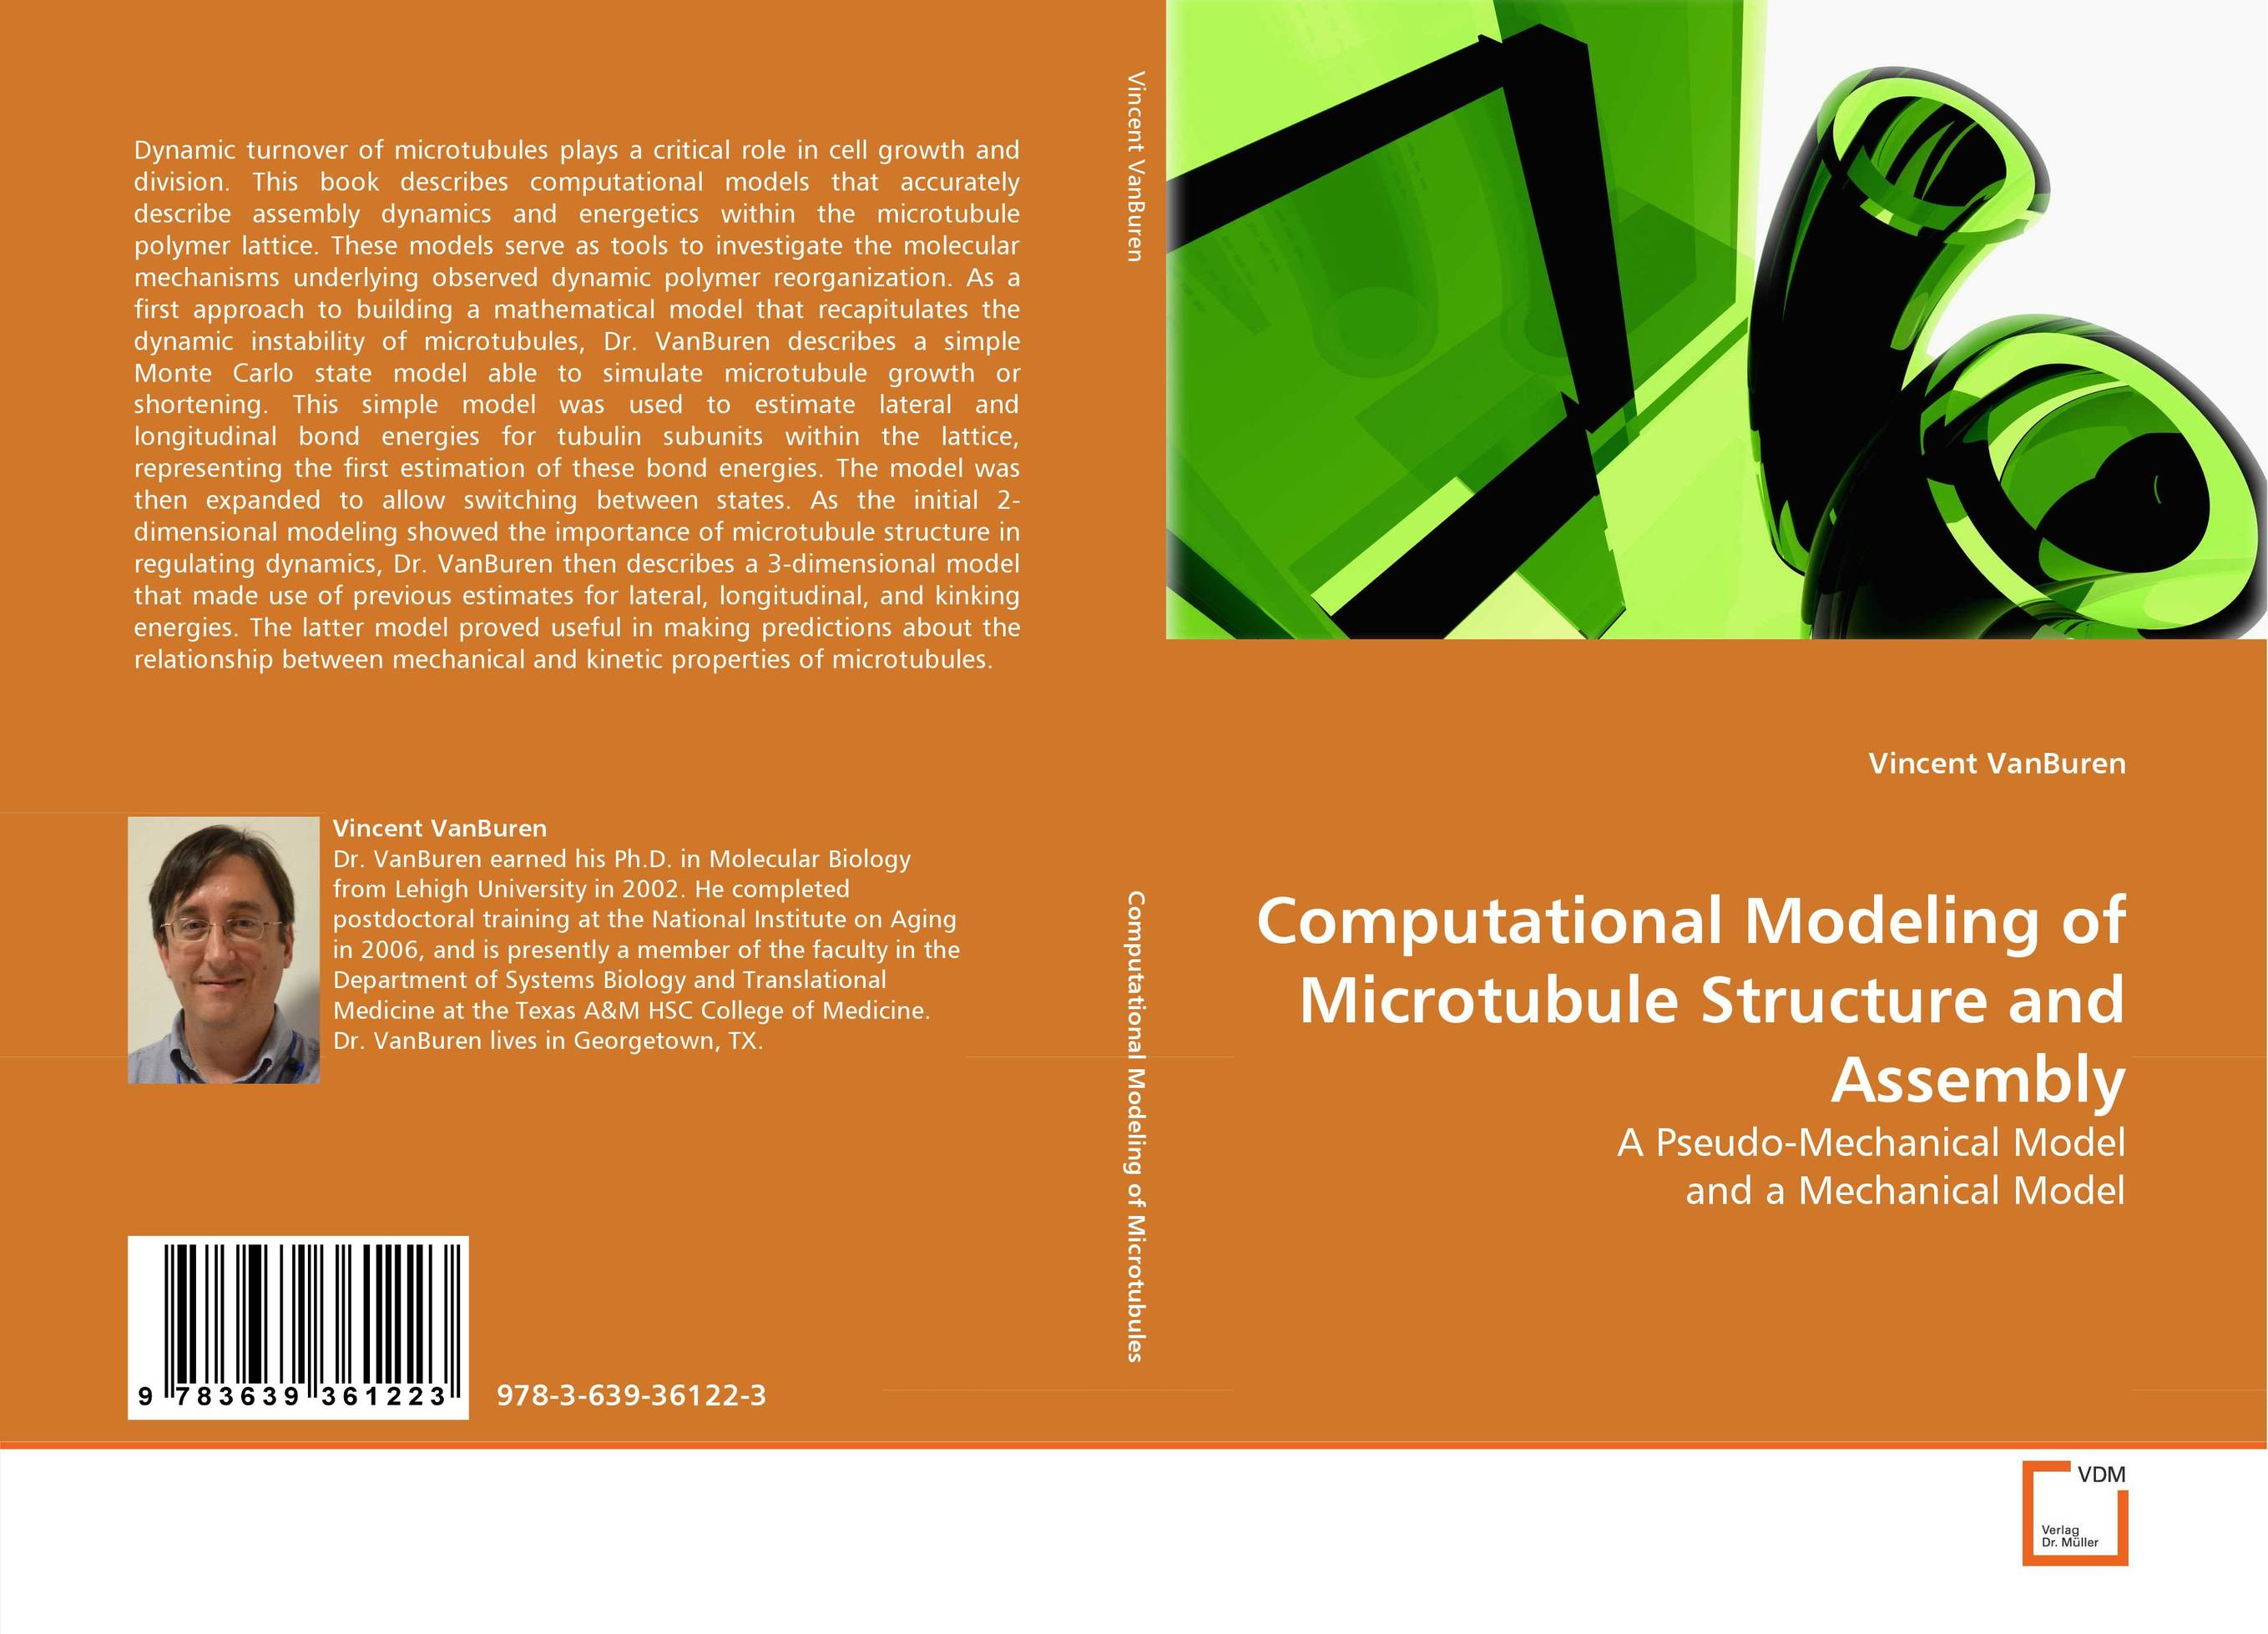 Computational Modeling of Microtubule Structure and Assembly 1 100 age 2 normal mg up to the basic type of assembly model for assembly model